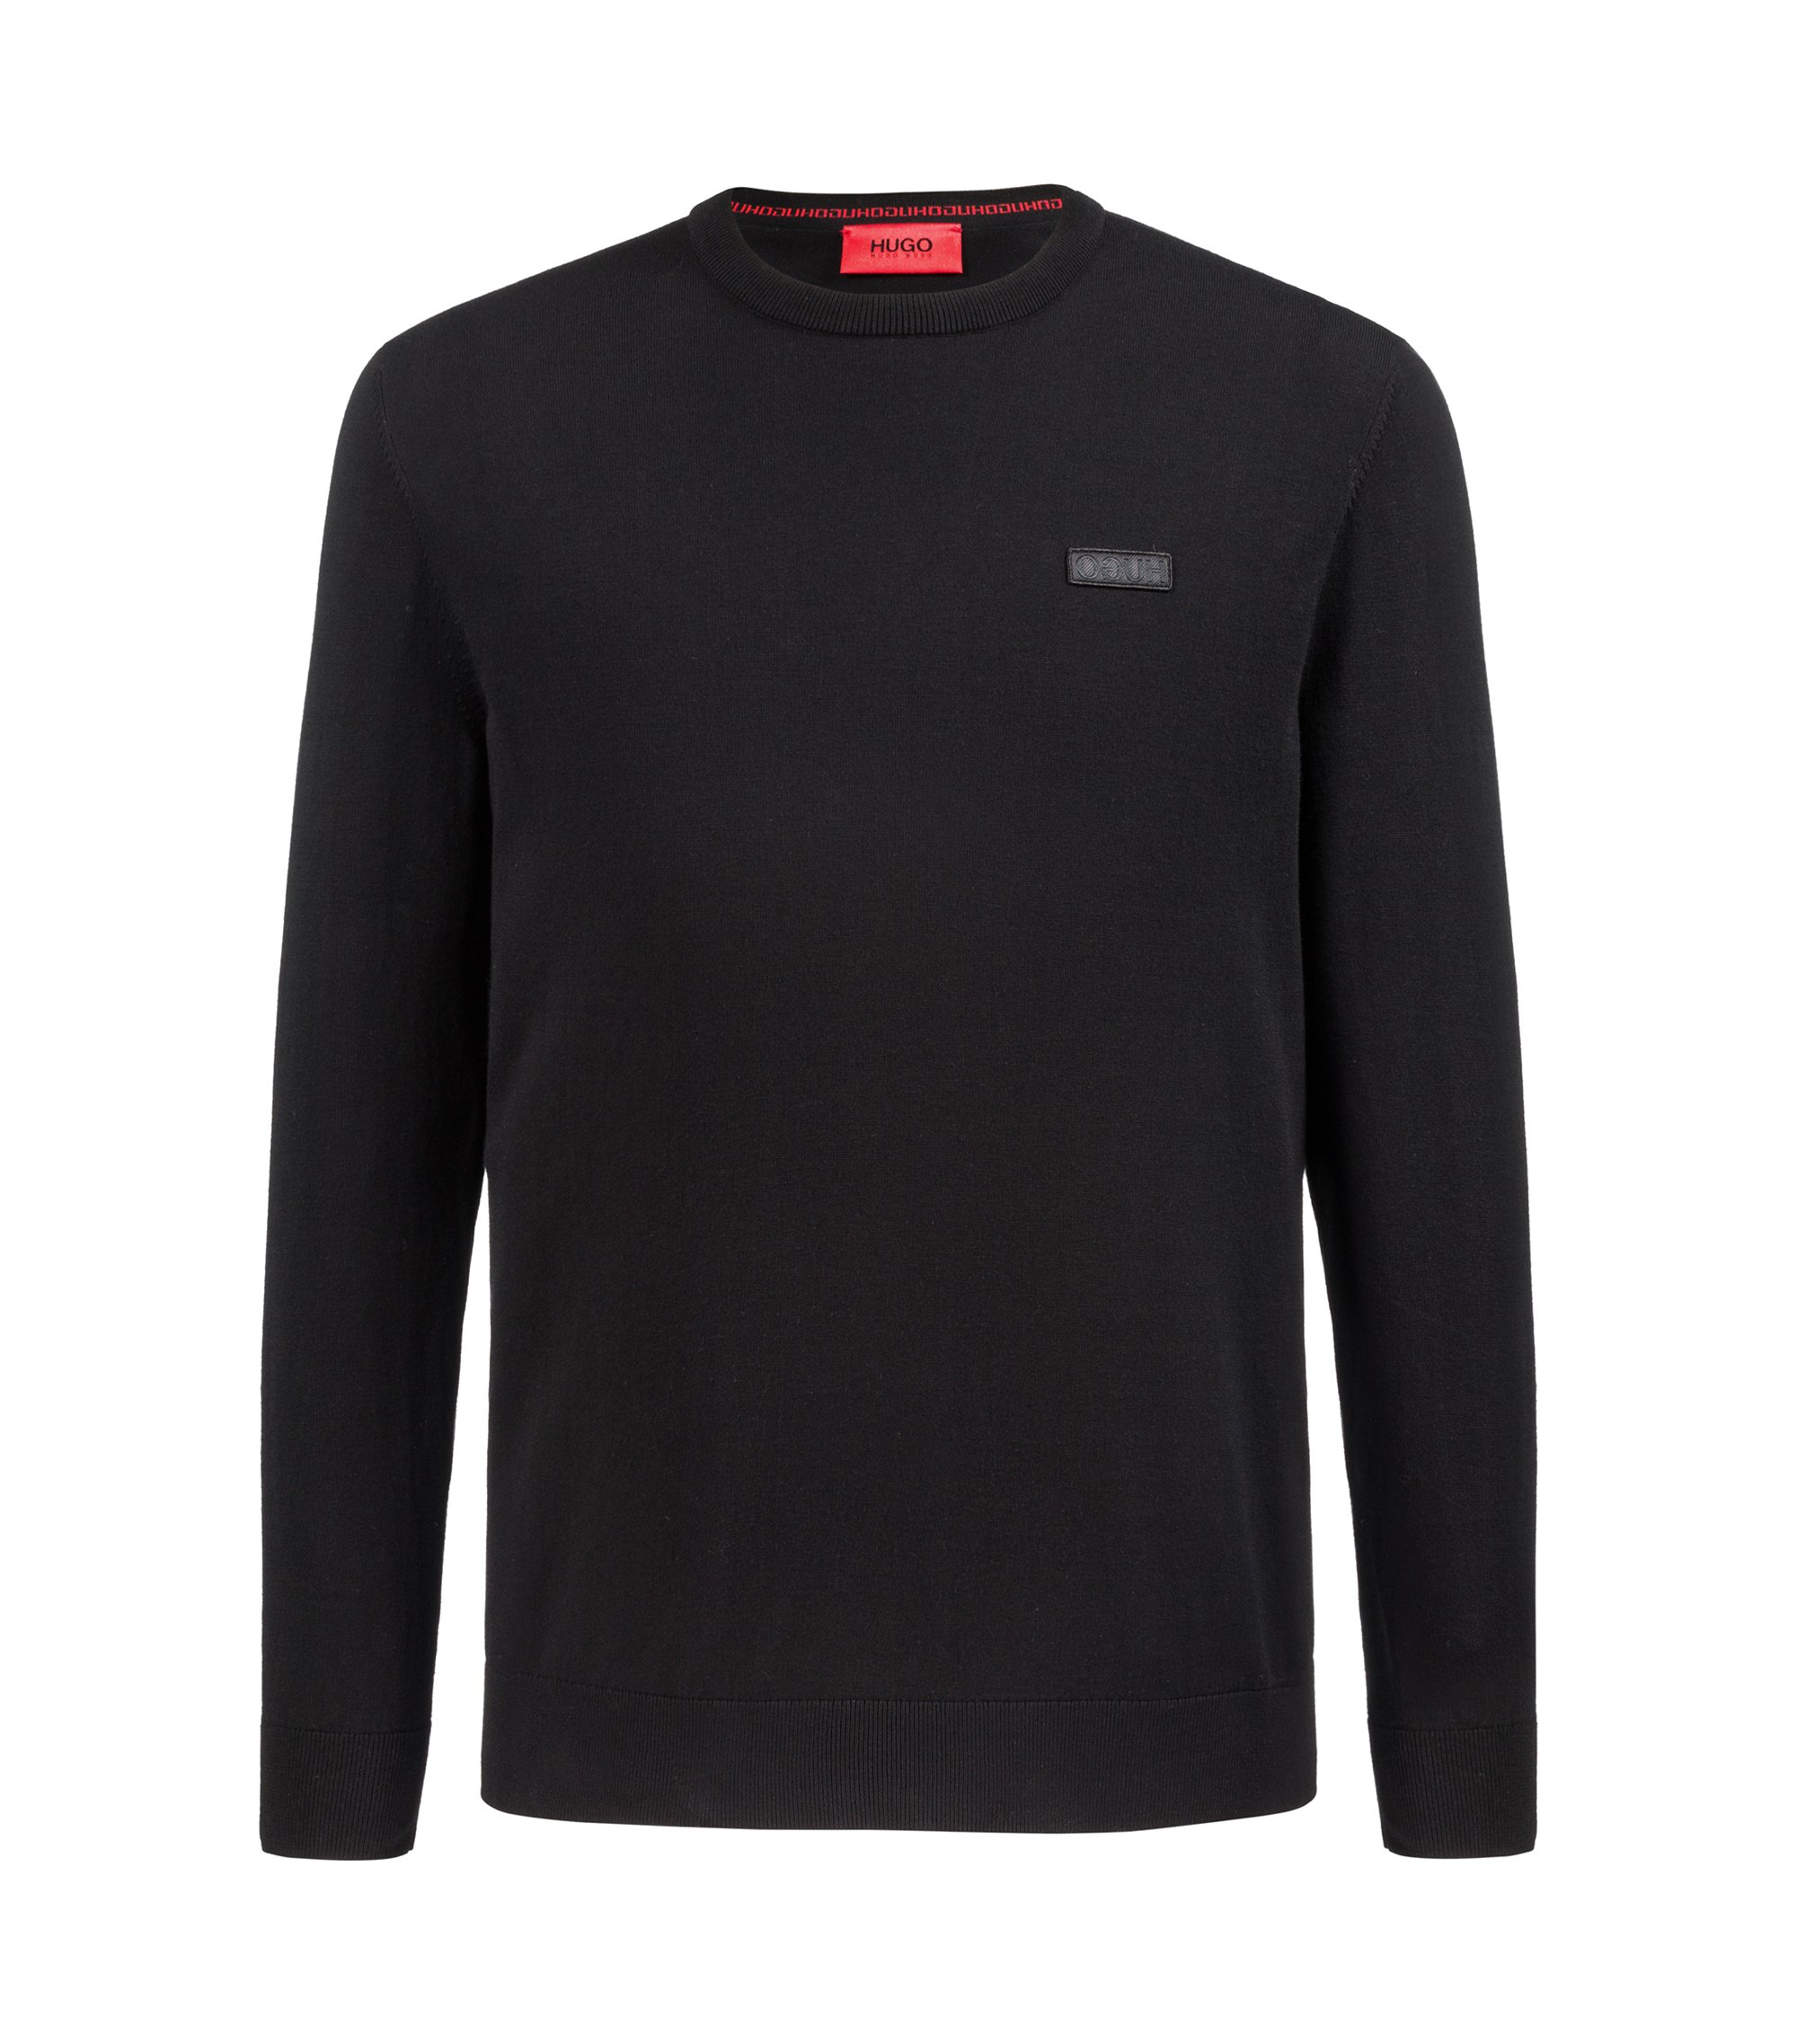 Crew-neck crepe sweater with logo badge, Black